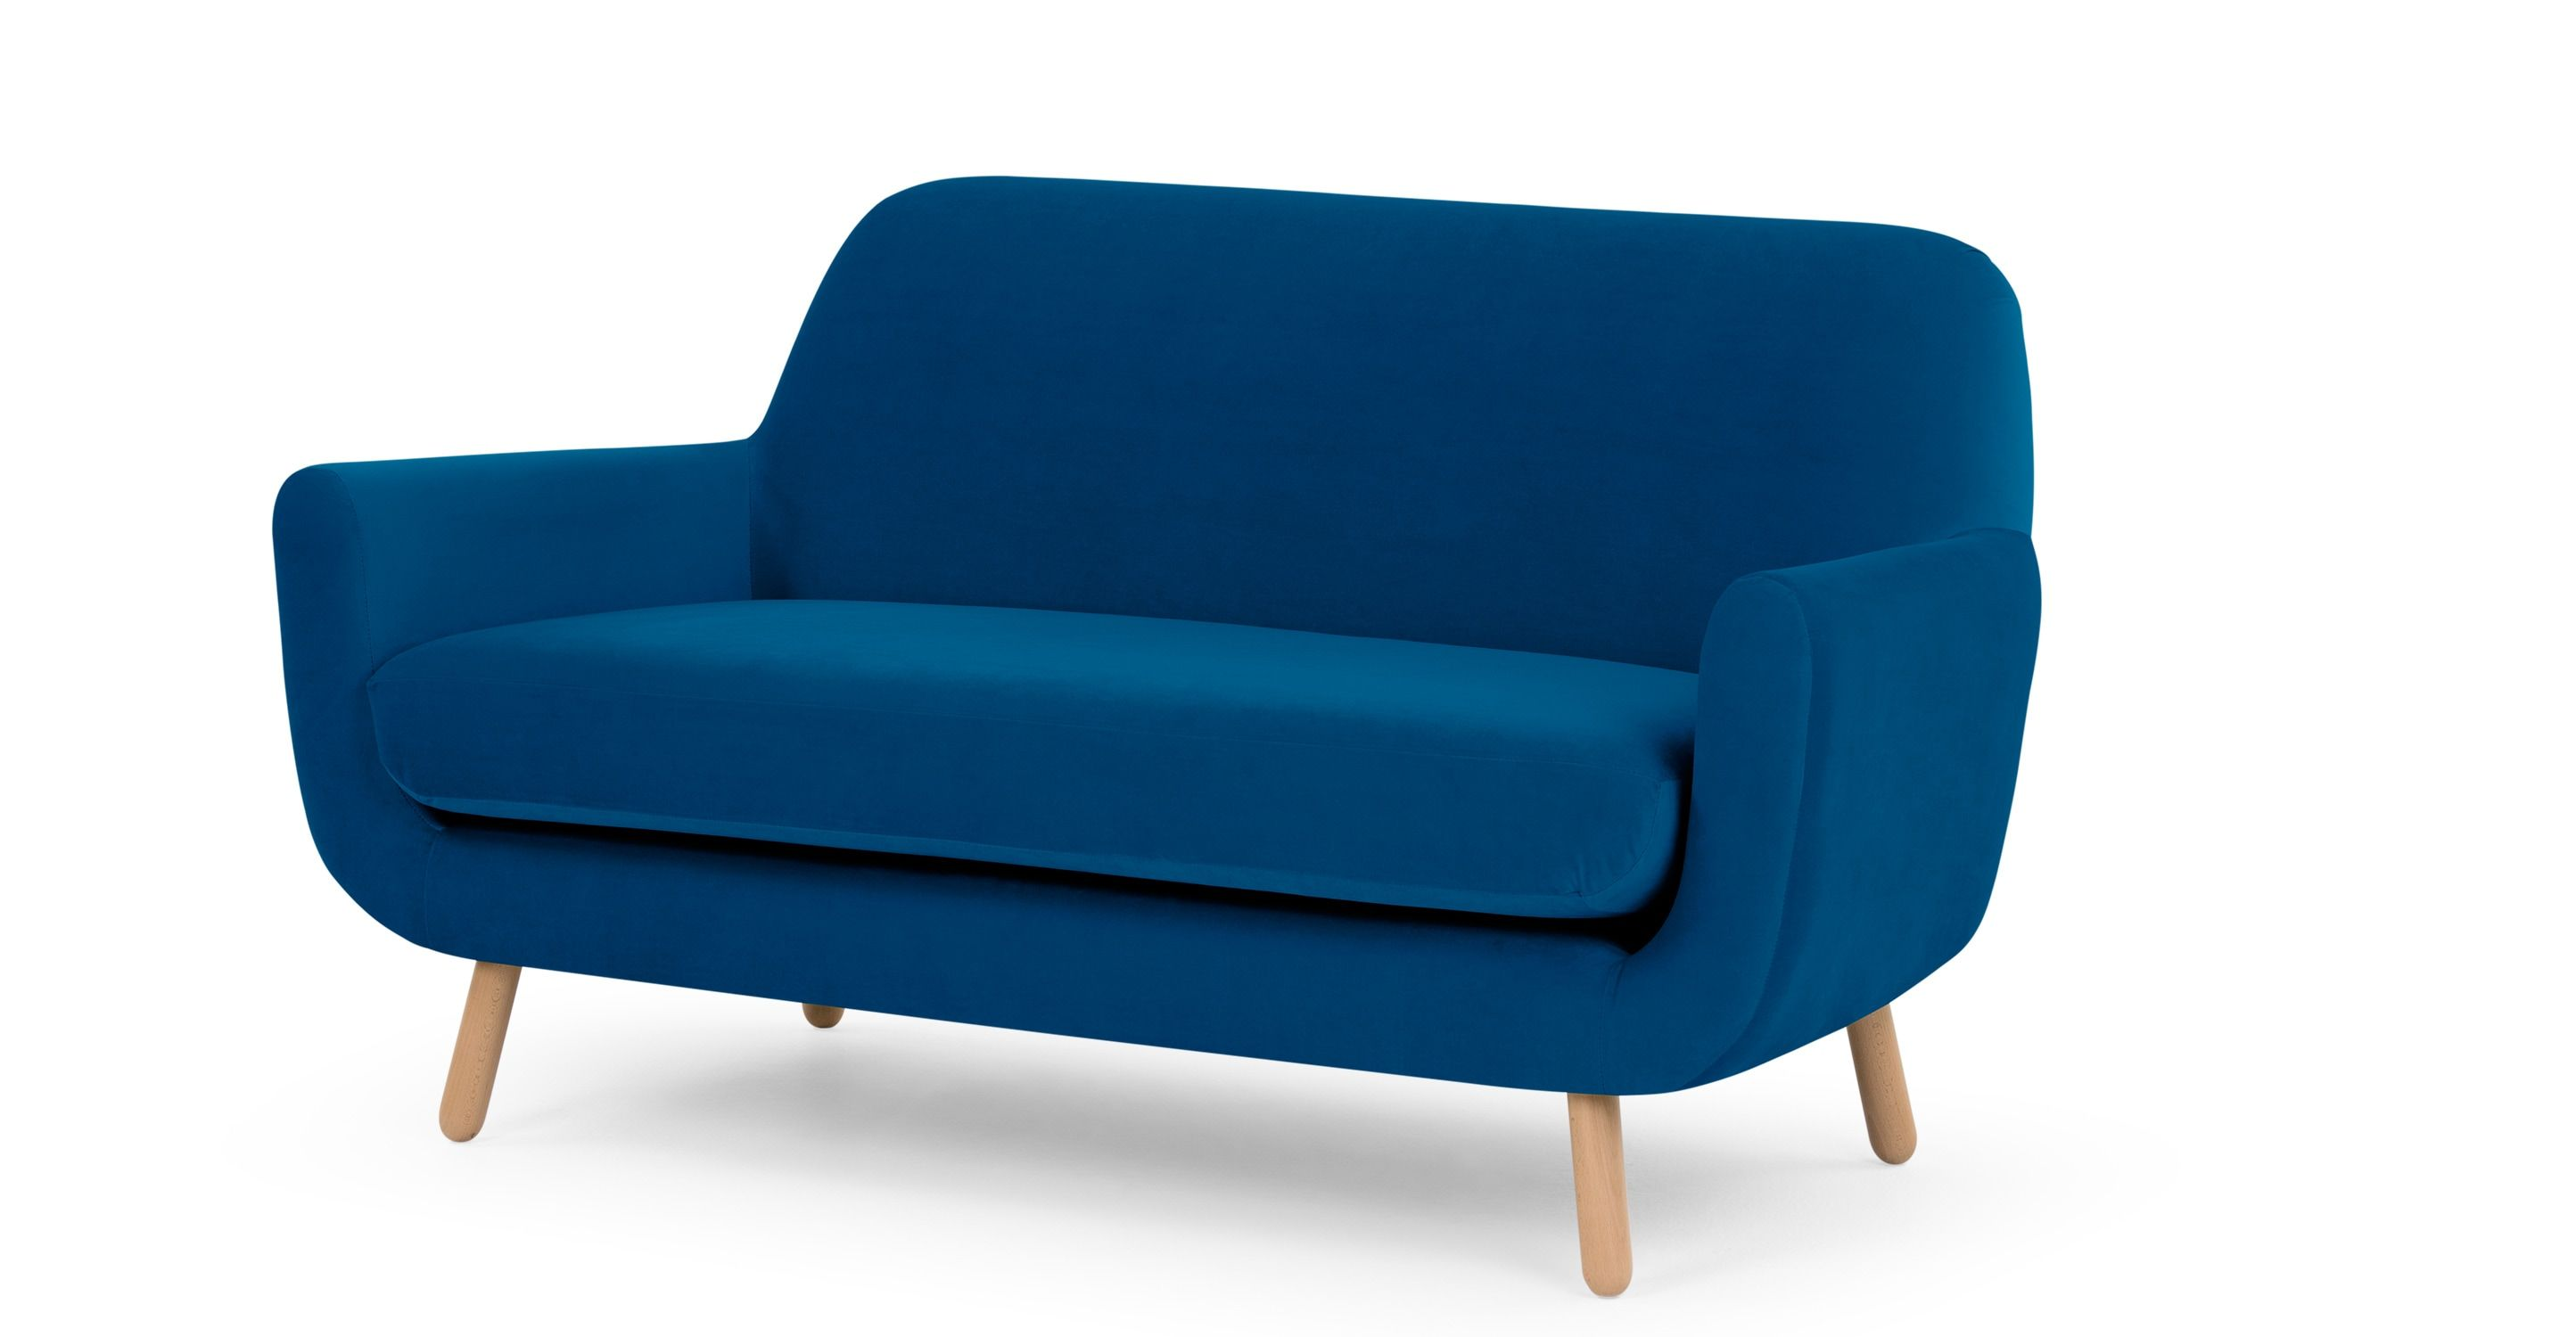 Jonah 2 Seater Sofa Cobalt Blue Sofas For Kitchen 2 Seater Sofa Sofa Sofa Shop